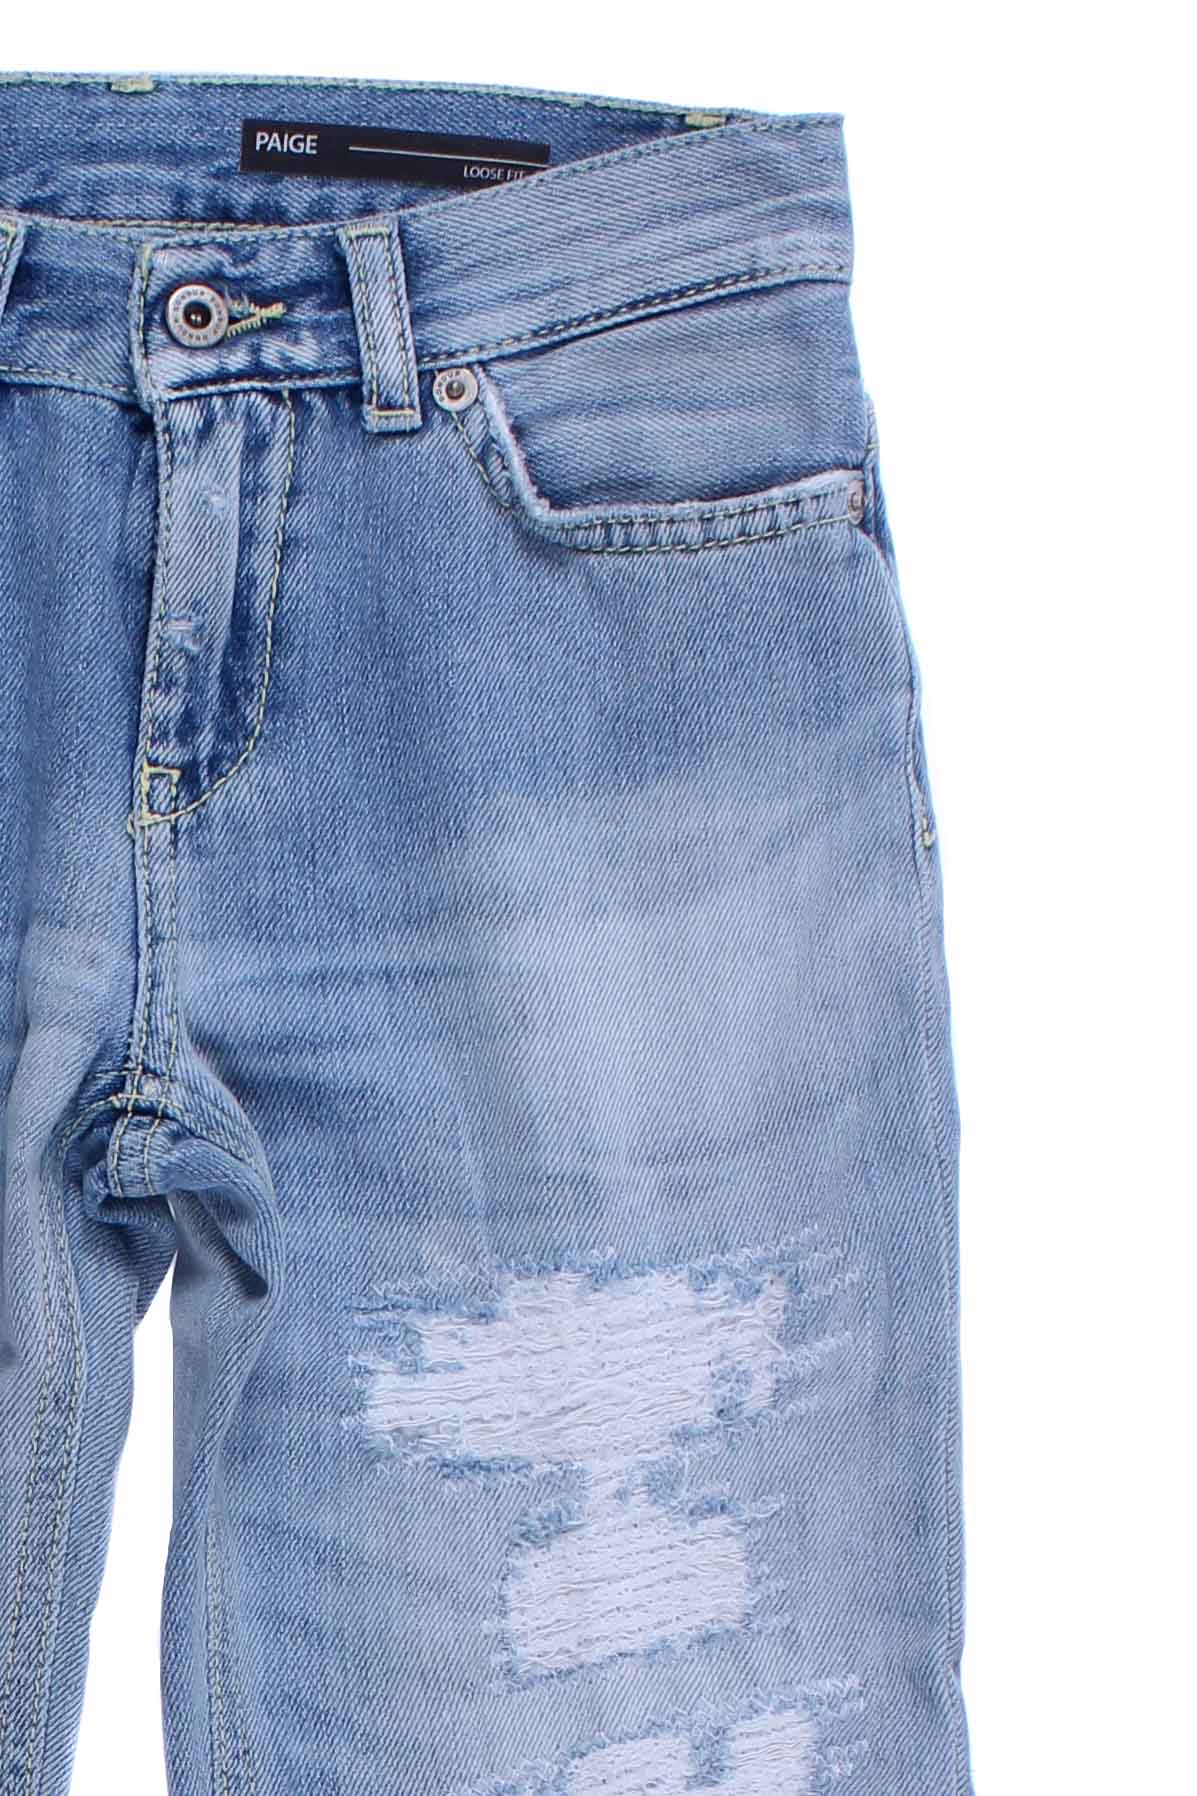 new arrivals d7f18 6c8a5 Distressed Paige jeans